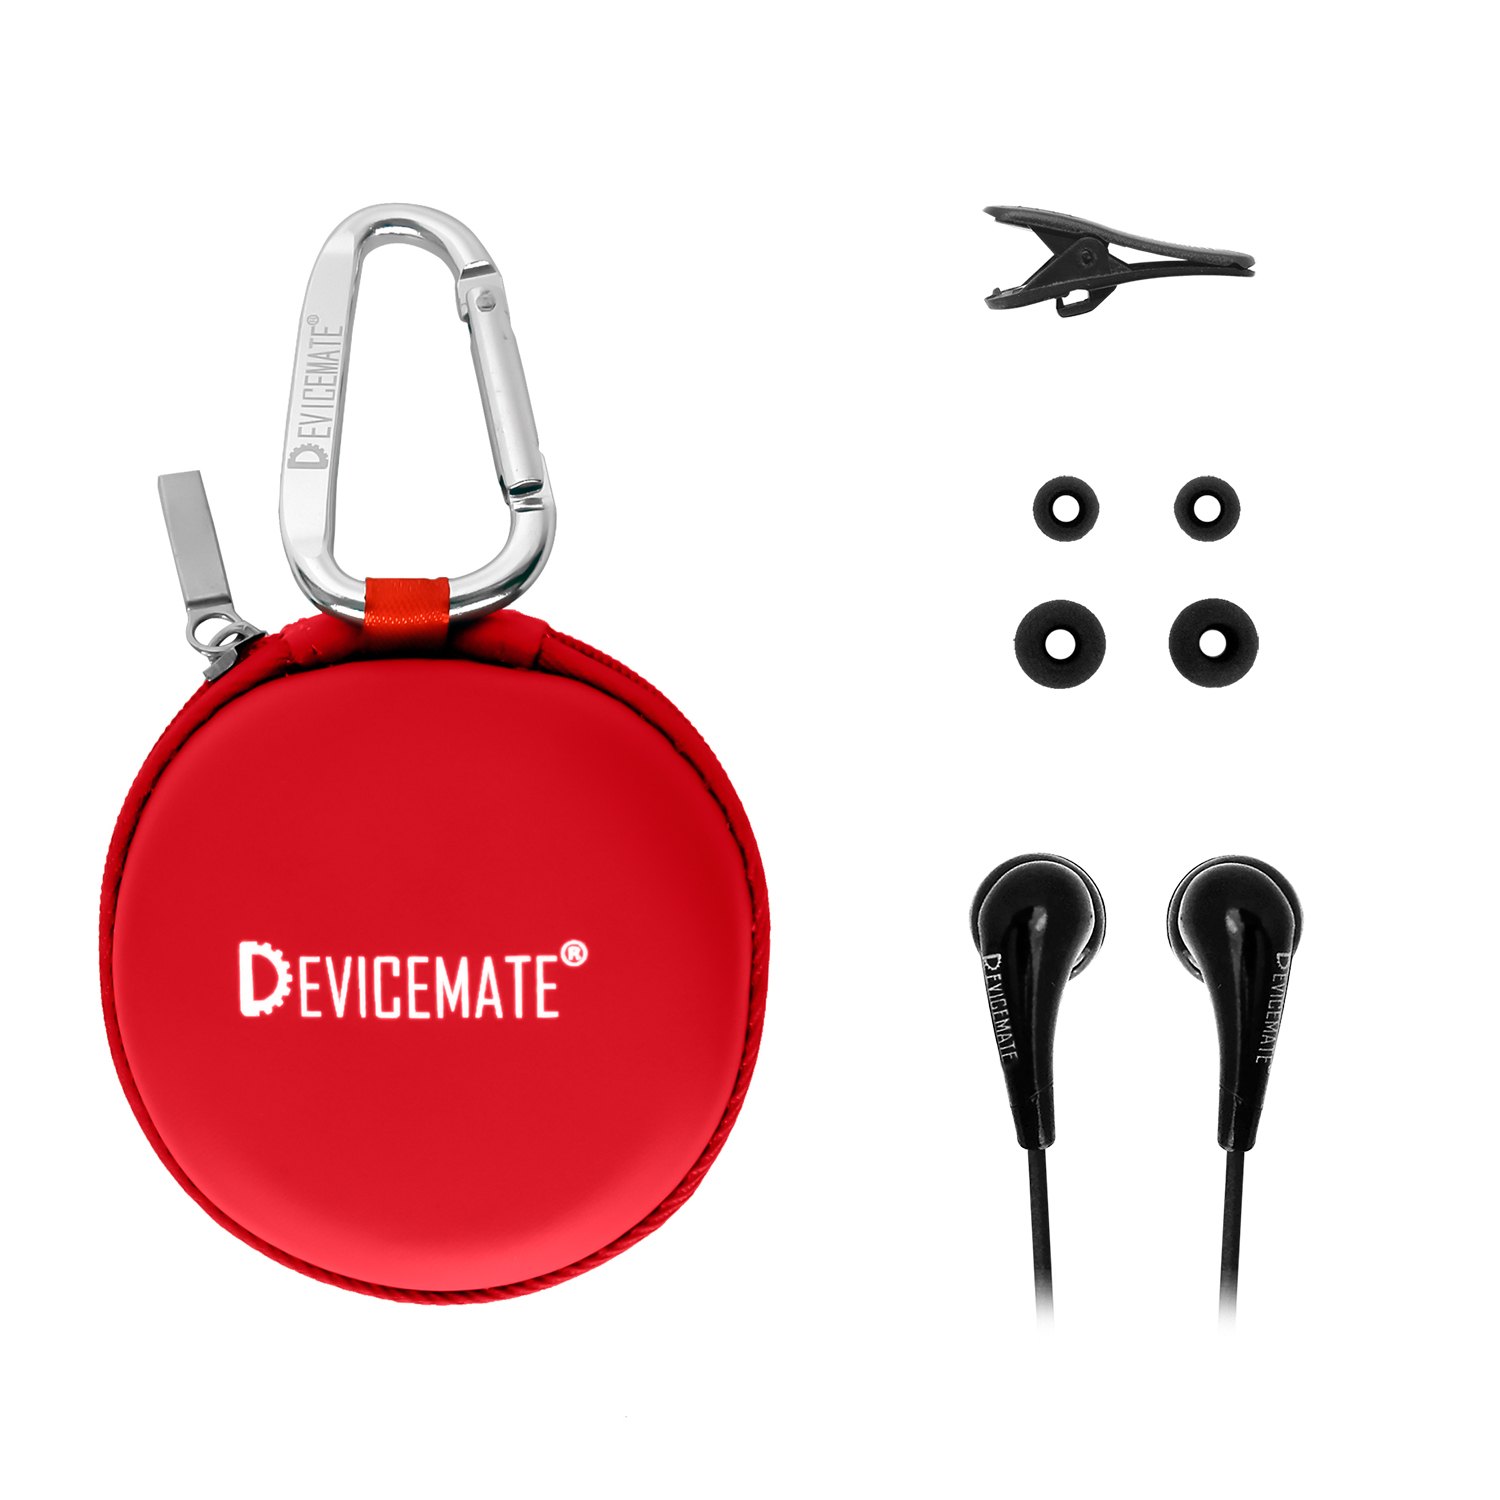 Devicemate SD 255-BRD In-Ear Stereo Earphones Buccaneer Red Case